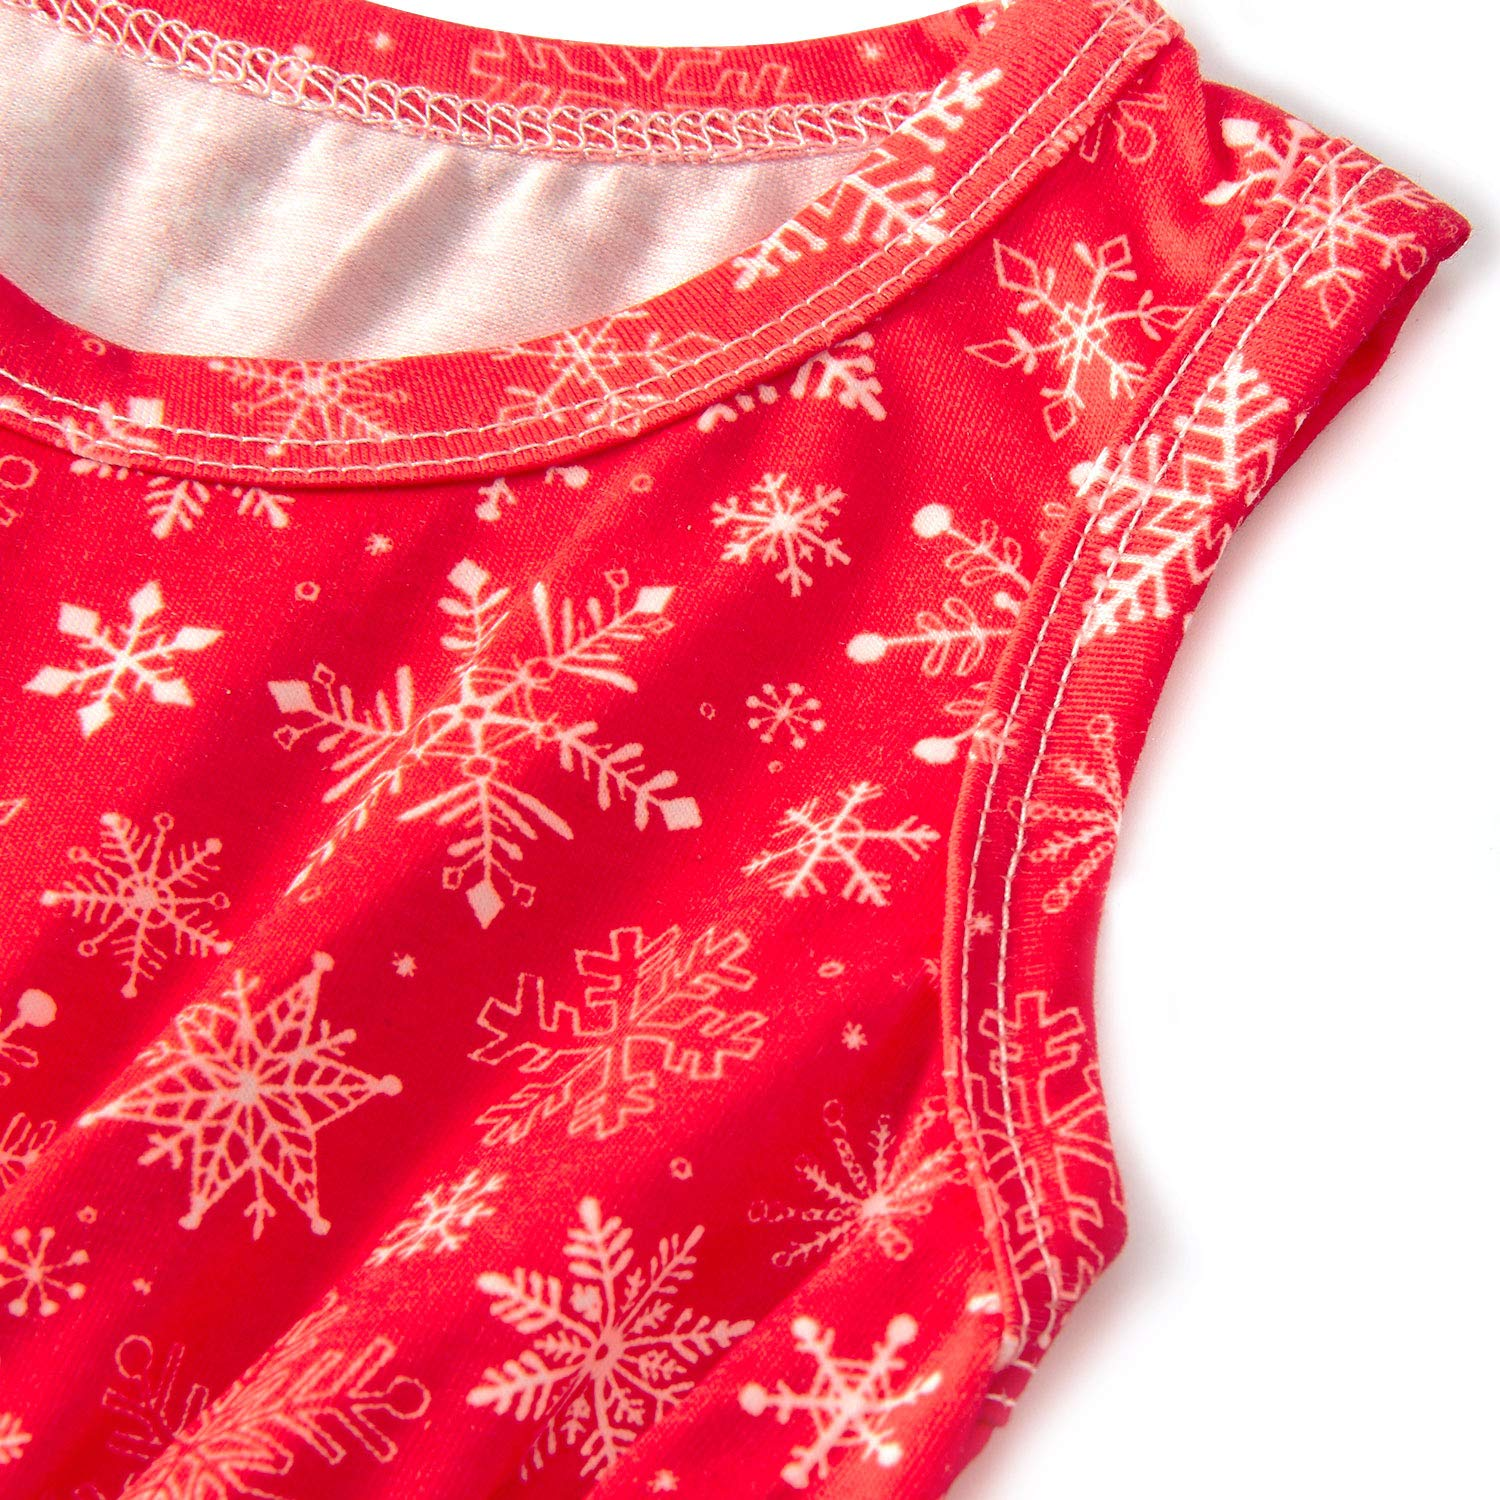 RAISEVERN Red Harem Jumpsuit for Kids Girls Snap Button Playsuit Spring Sleeveless Snowflake Printed for 12-18 Months Baby Onesies Set